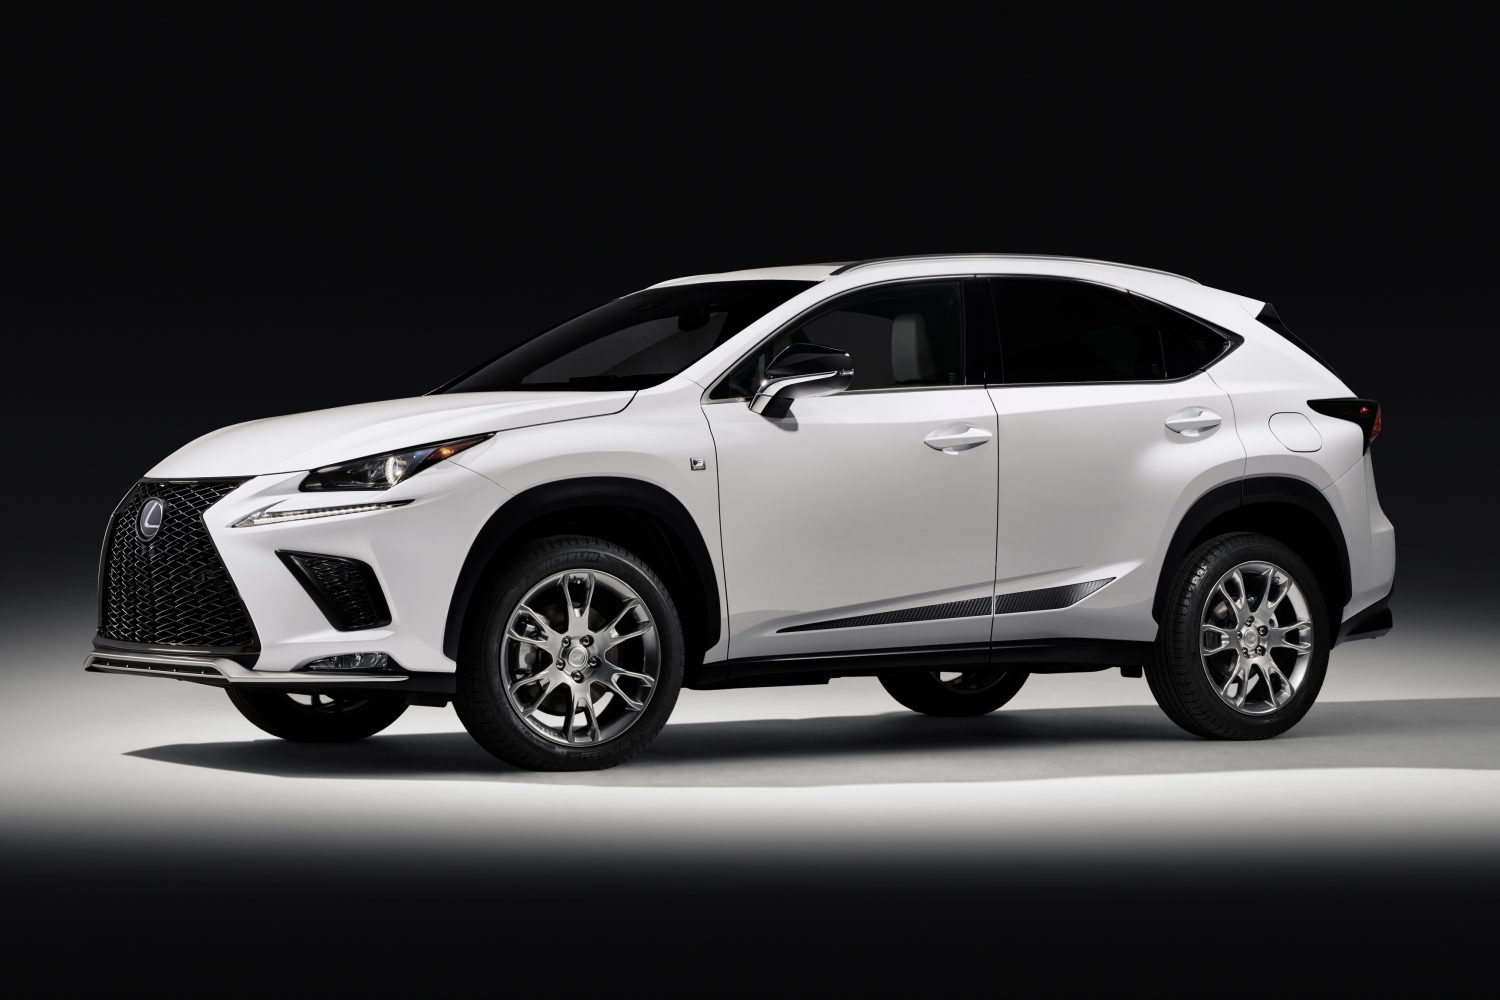 2019 Lexus Nx Gets Distinct Styling Touches With The Black